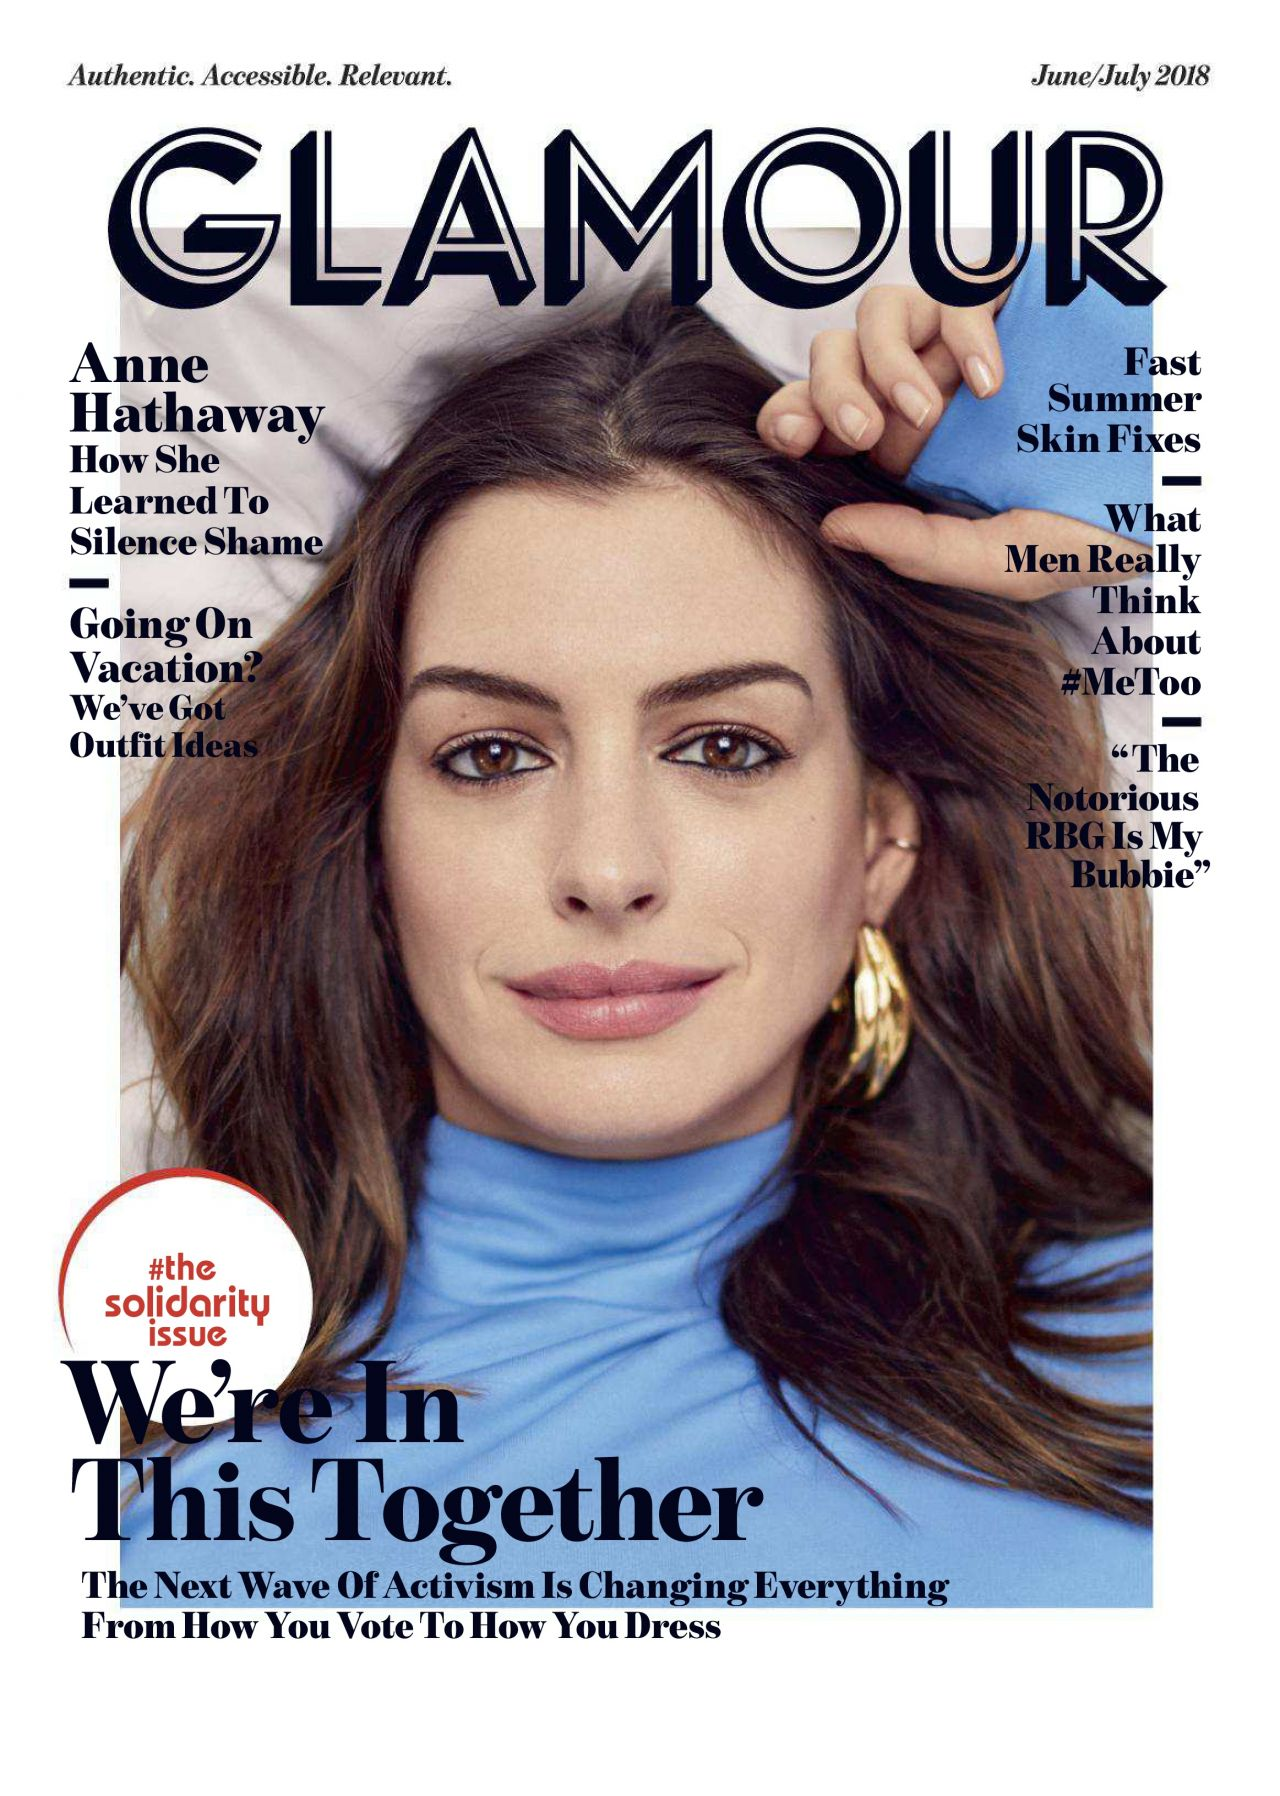 Anne-Hathaway-Glamour-Cover-Photoshoot01.jpg